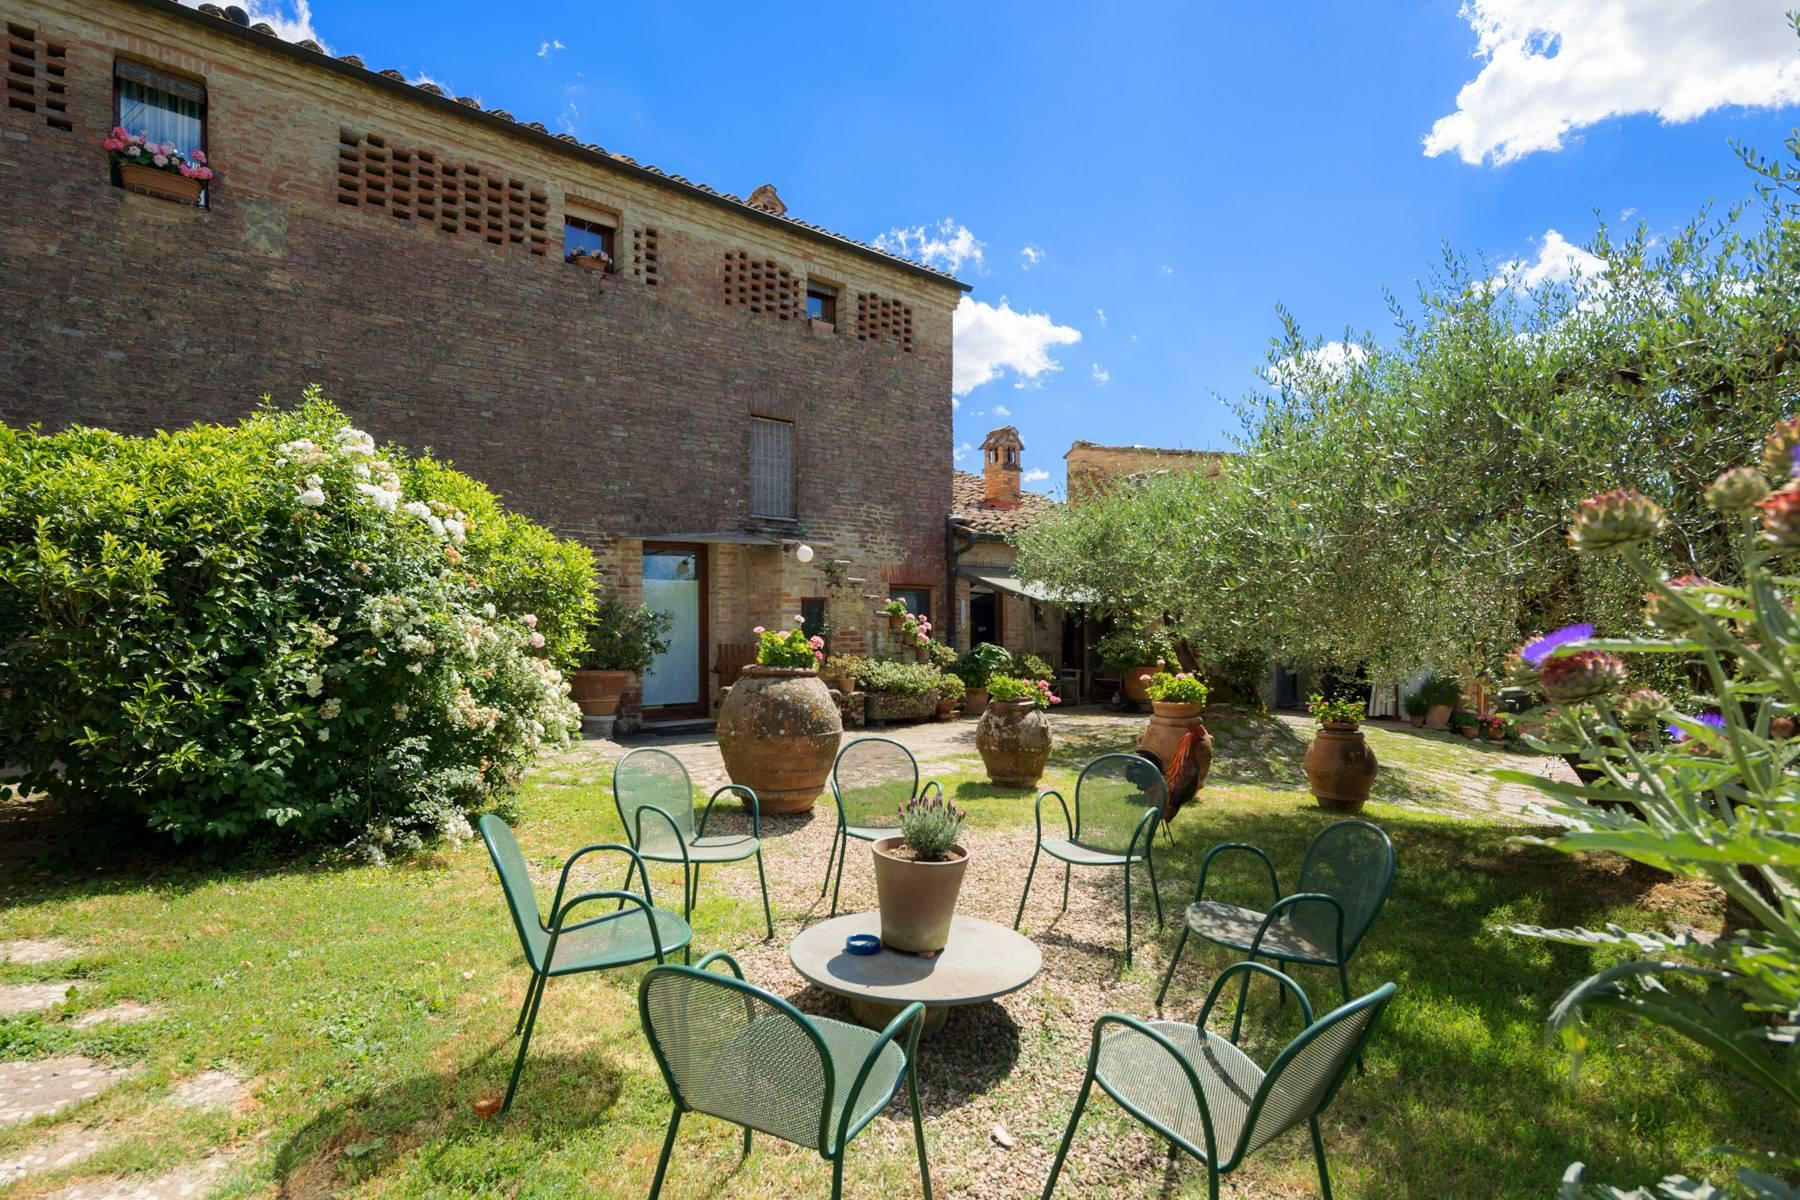 Enchanting farmhouse with agriturismo on the outskirts of Siena - 2